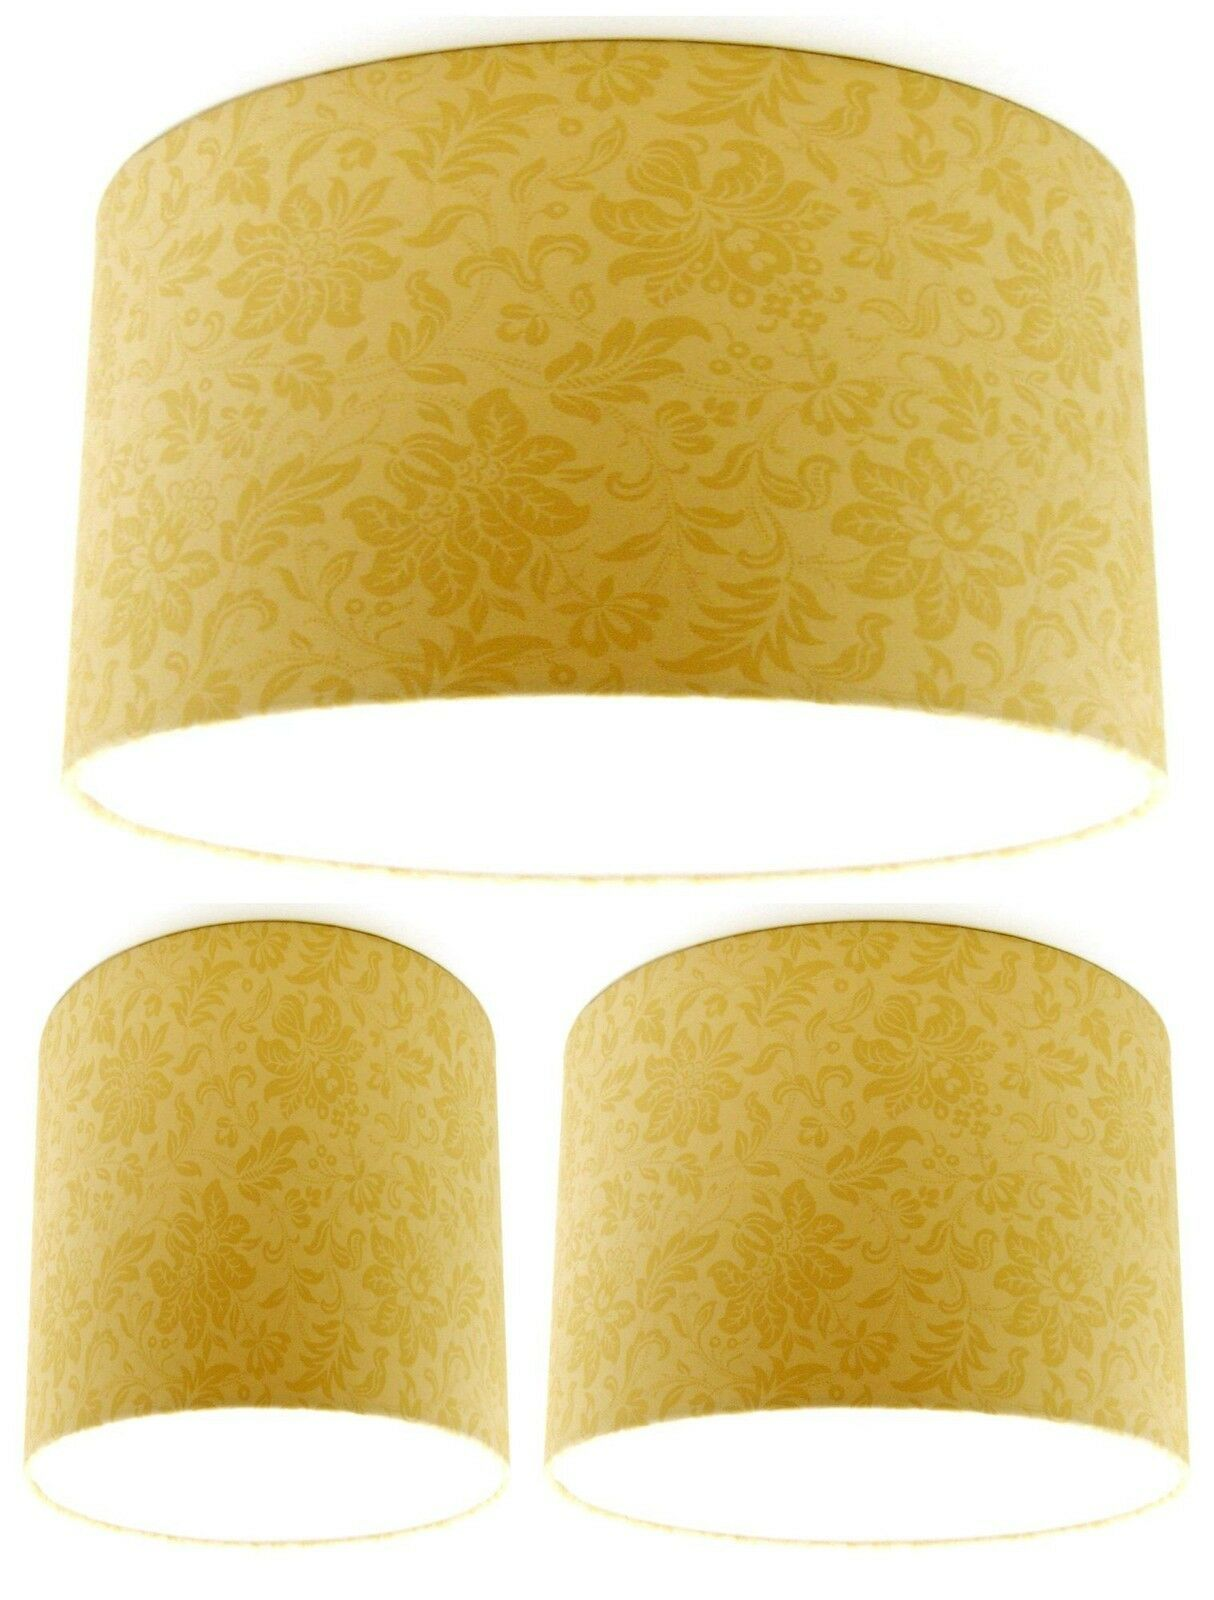 NEW Lampshade Handmade with Laura Ashley Percy Gold Wallpaper FREE P&P